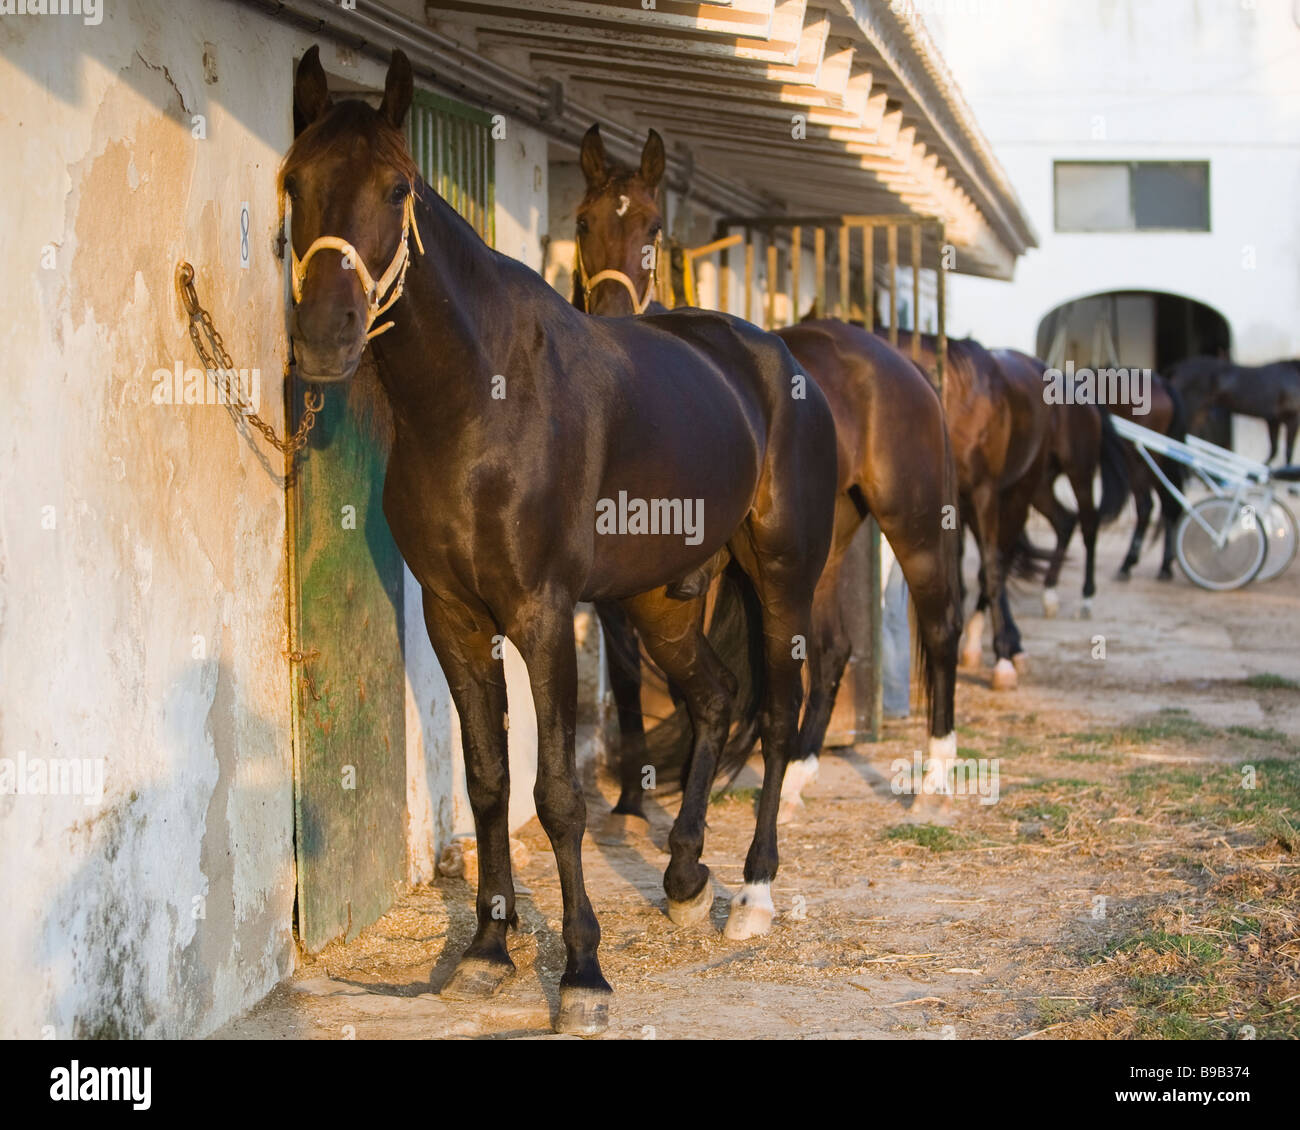 tethered horses at stables - Stock Image